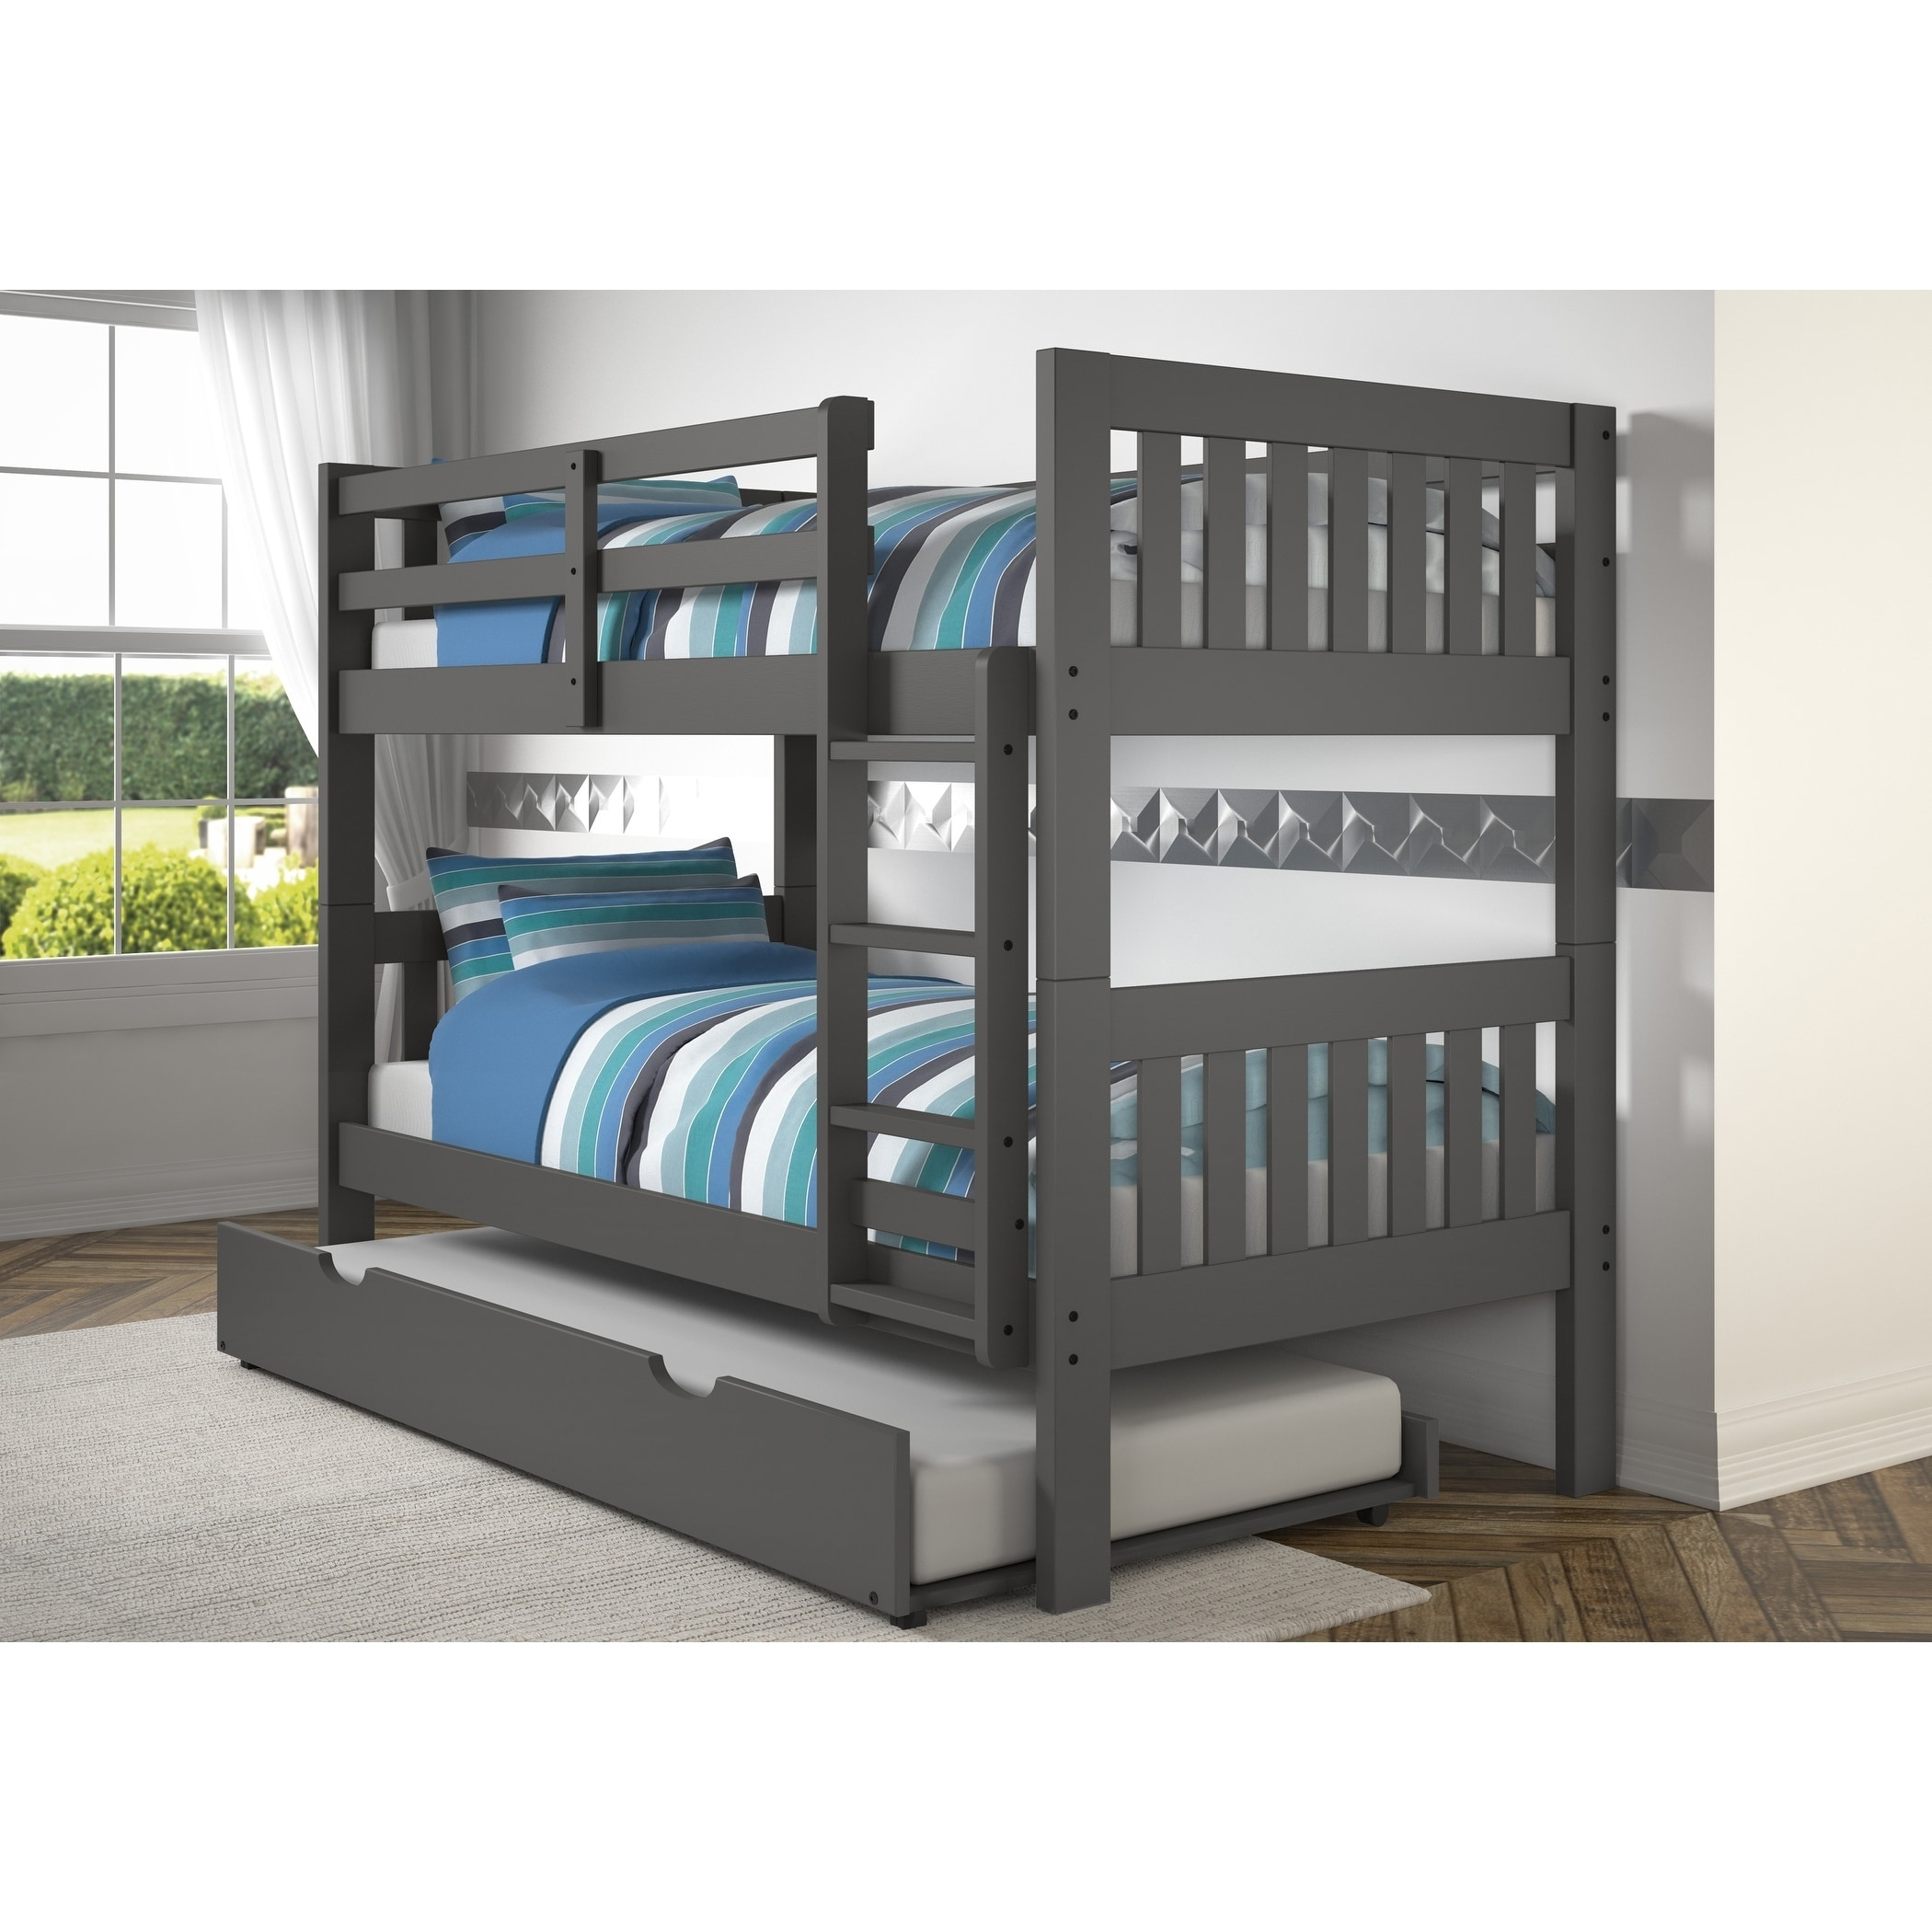 Twin Over Mission Bunk Bed With Storage Drawers In Dark Gray Finish